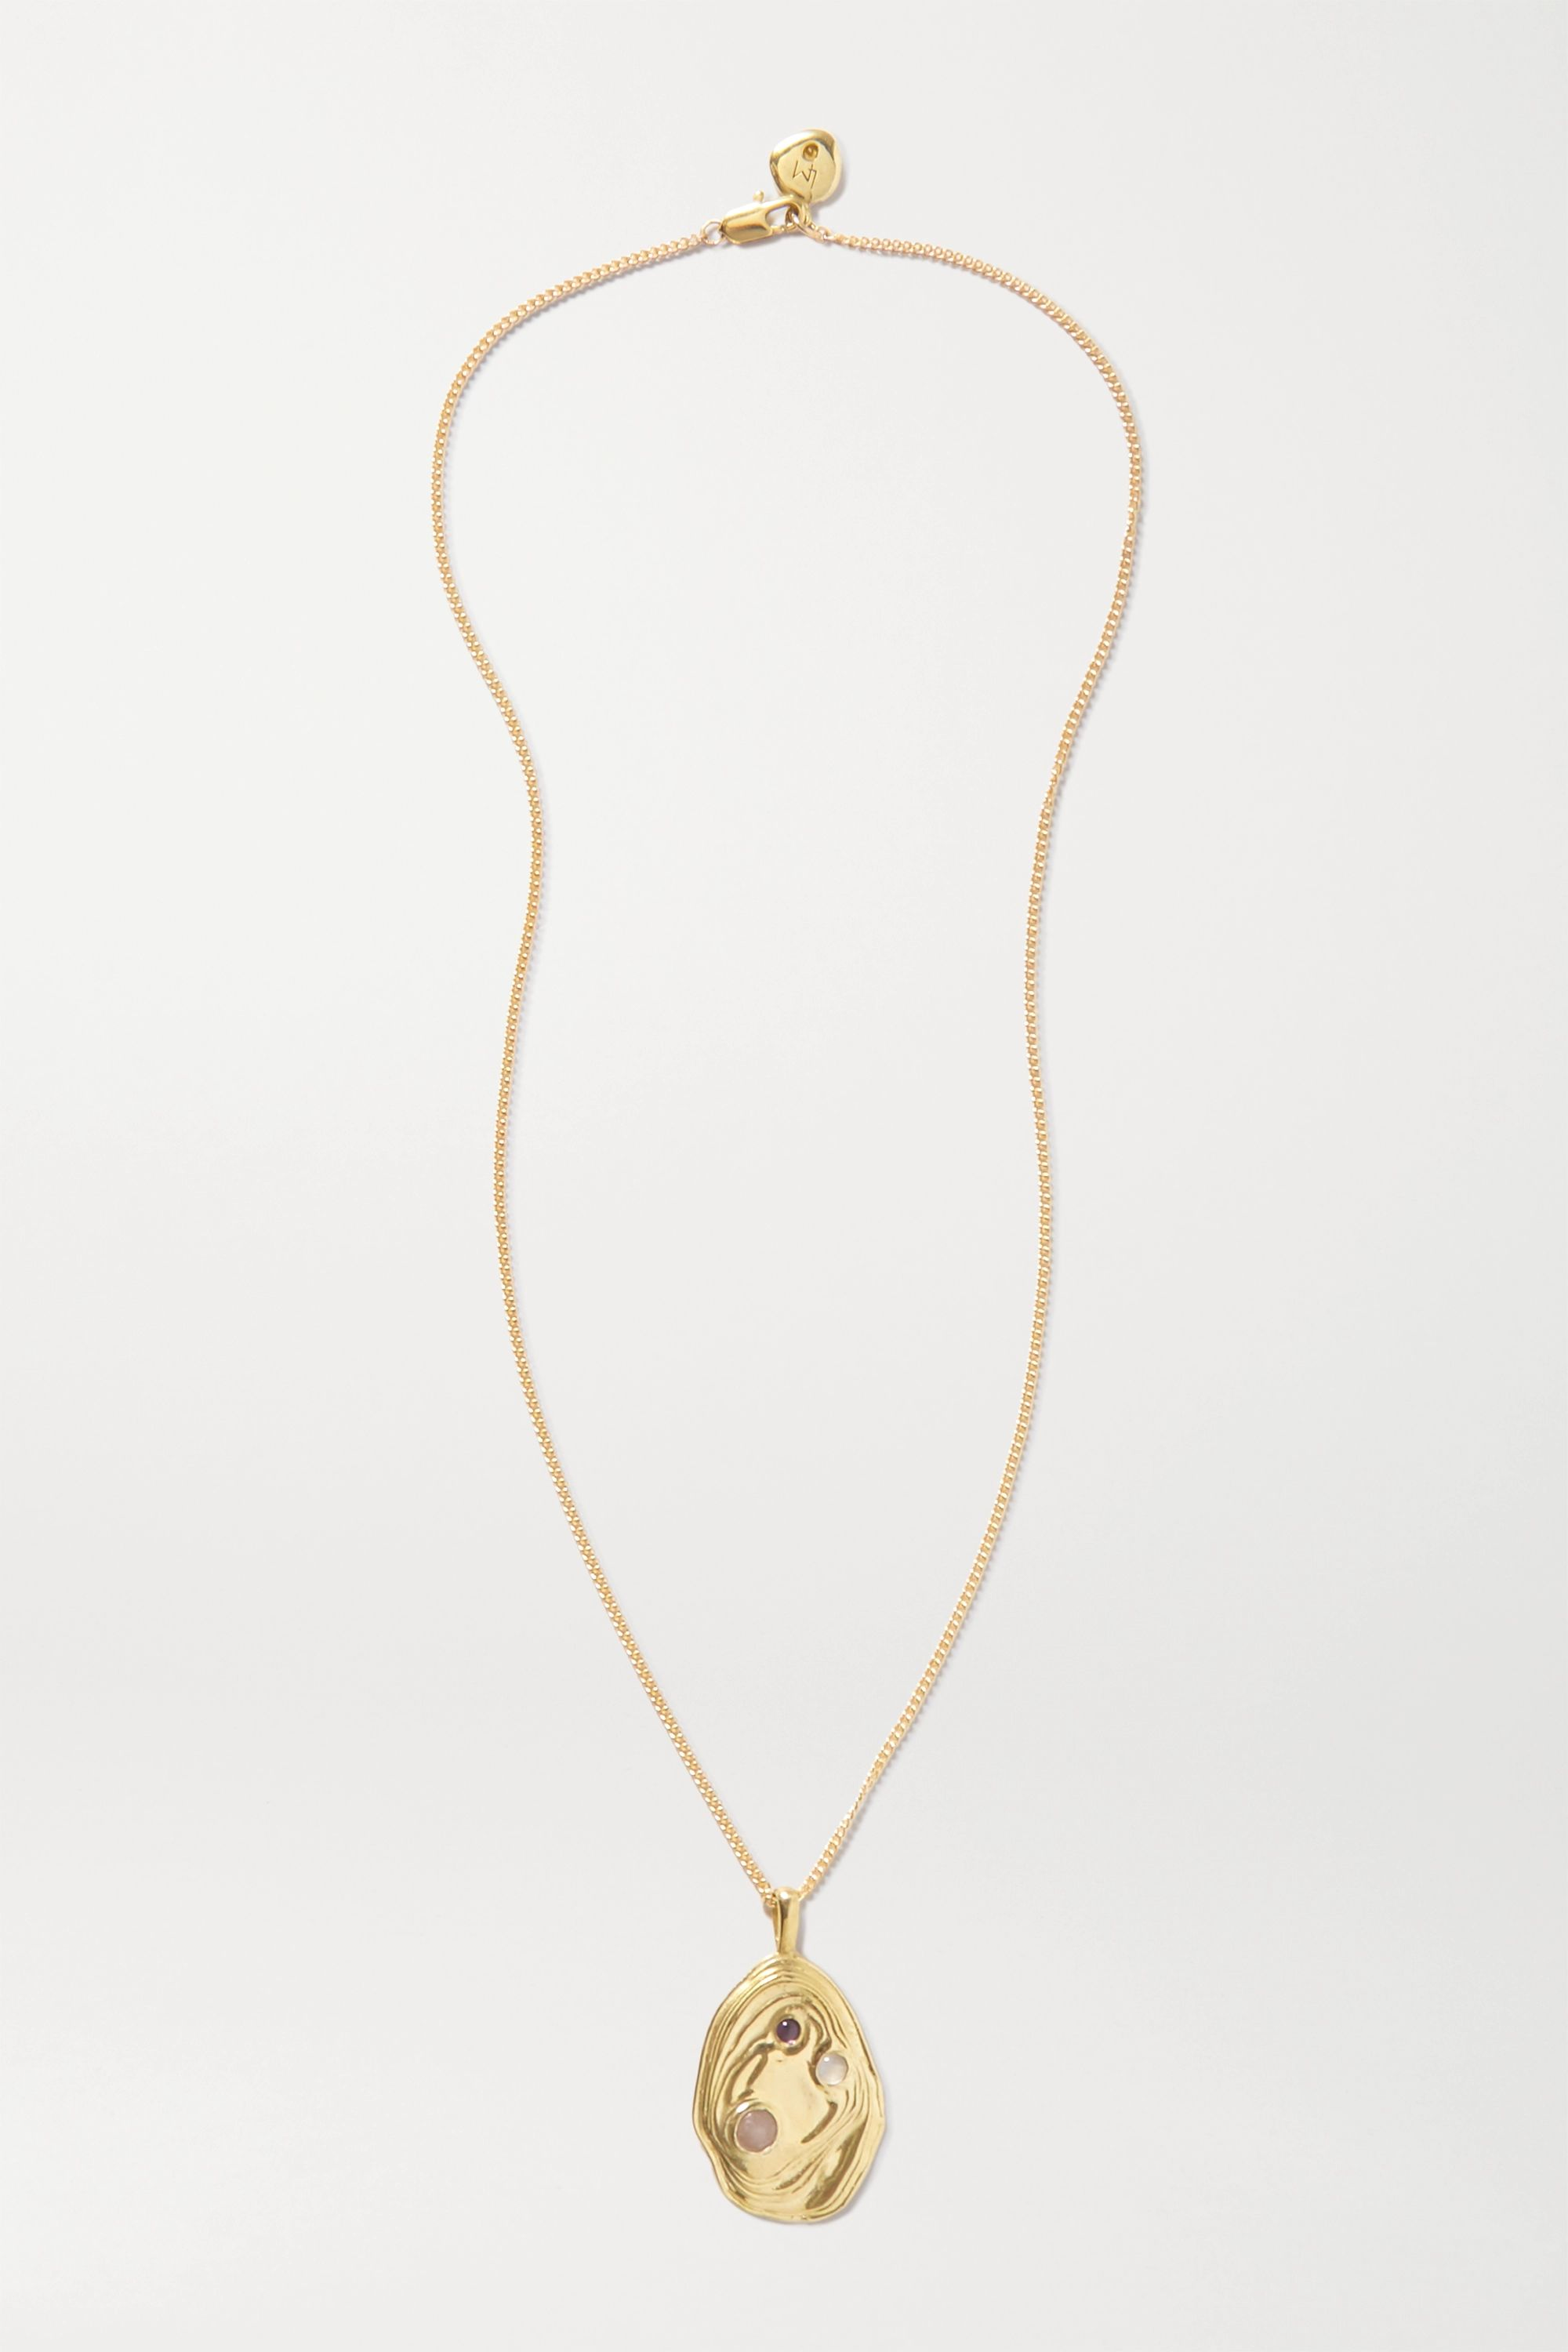 Leigh Miller + NET SUSTAIN Lava gold-tone multi-stone necklace